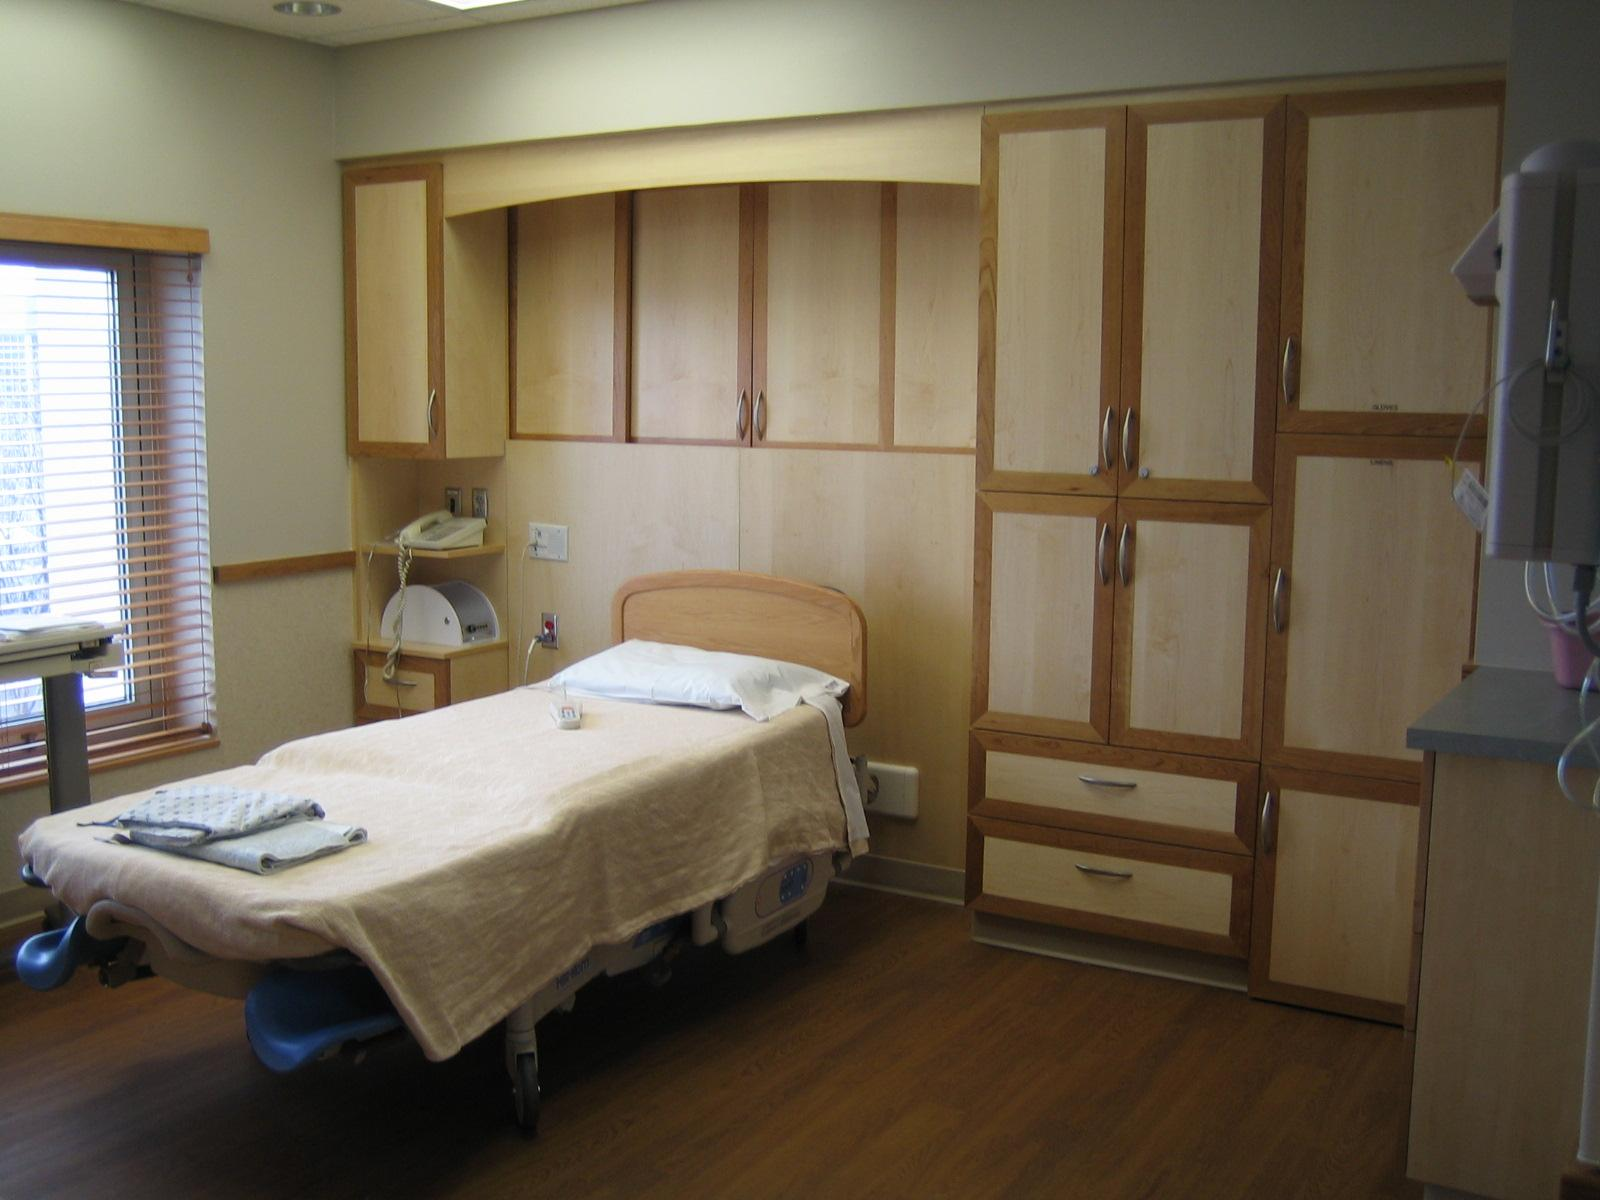 MGMC Patient Room 2